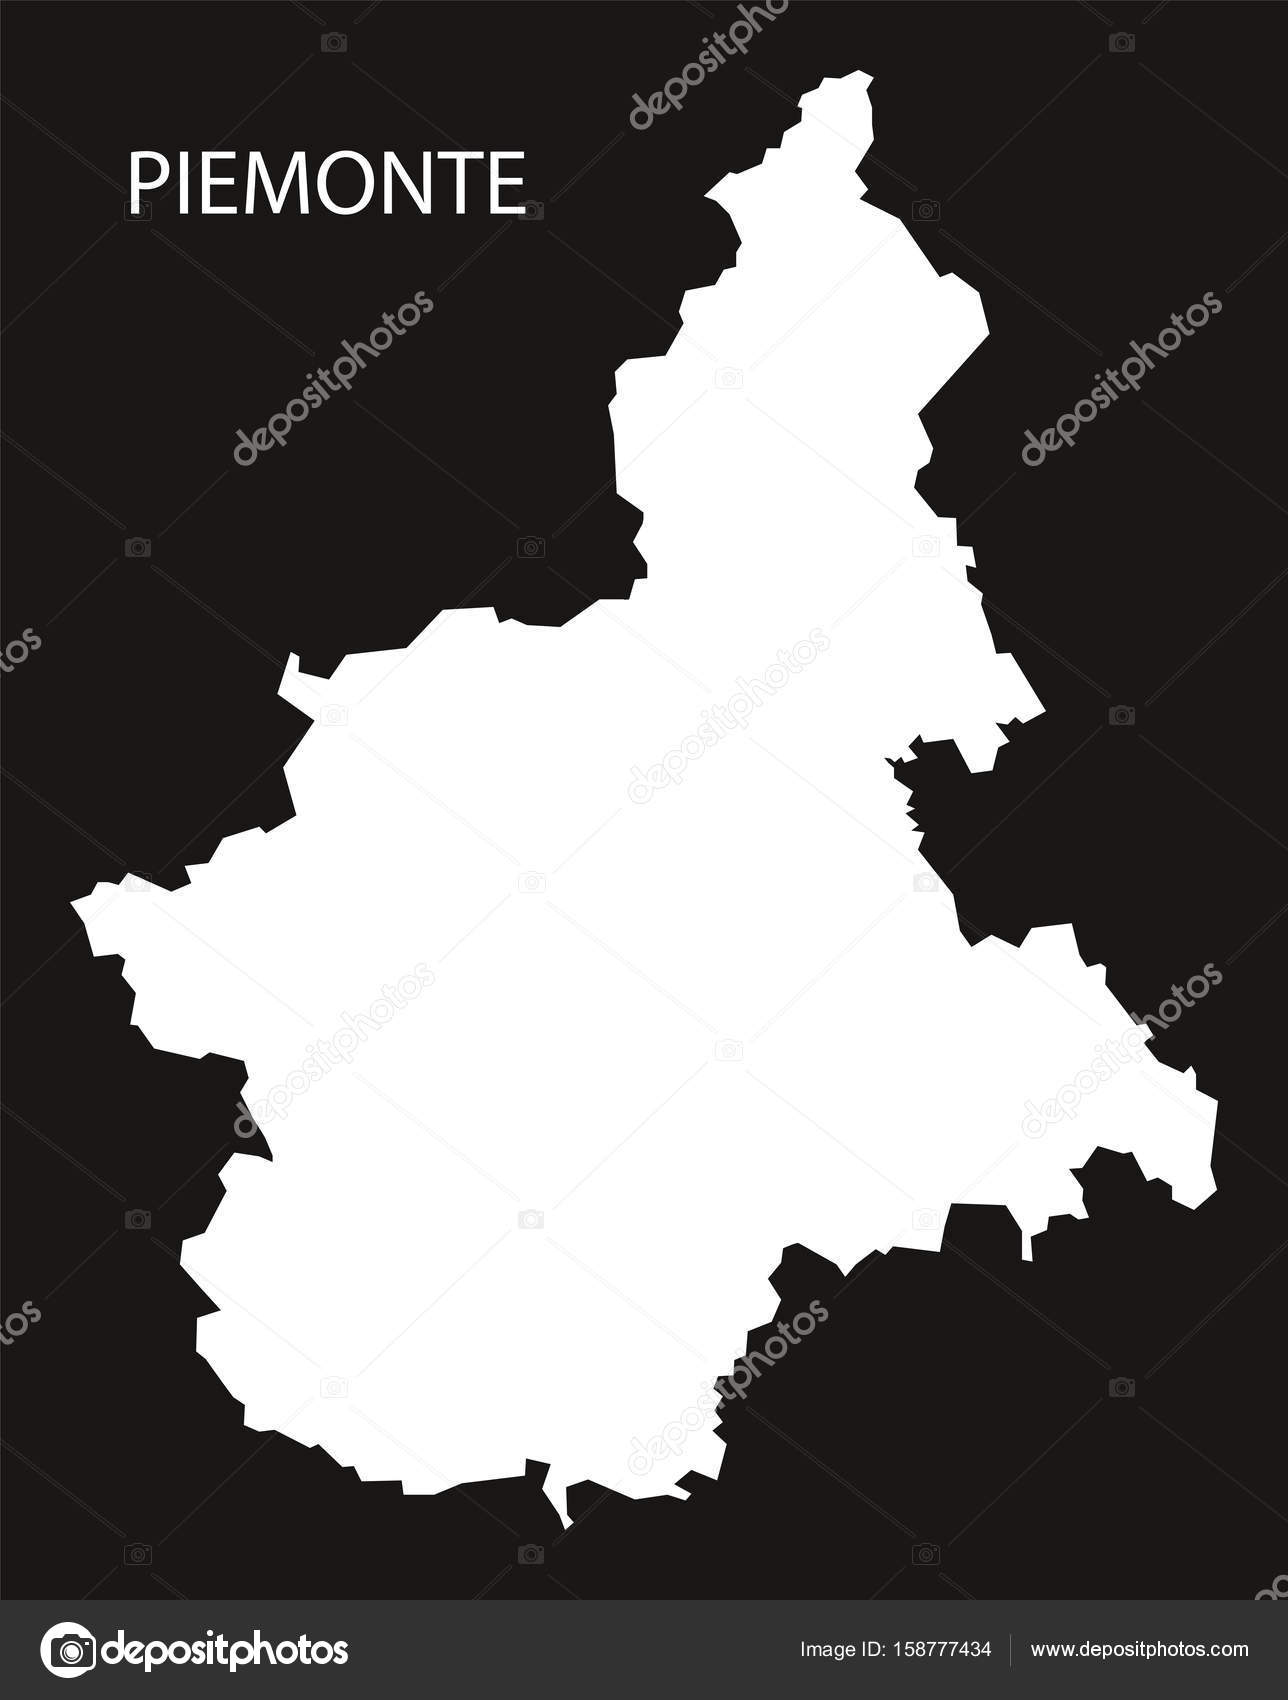 Piemonte Italy Map Black Inverted Silhouette Stock Vector